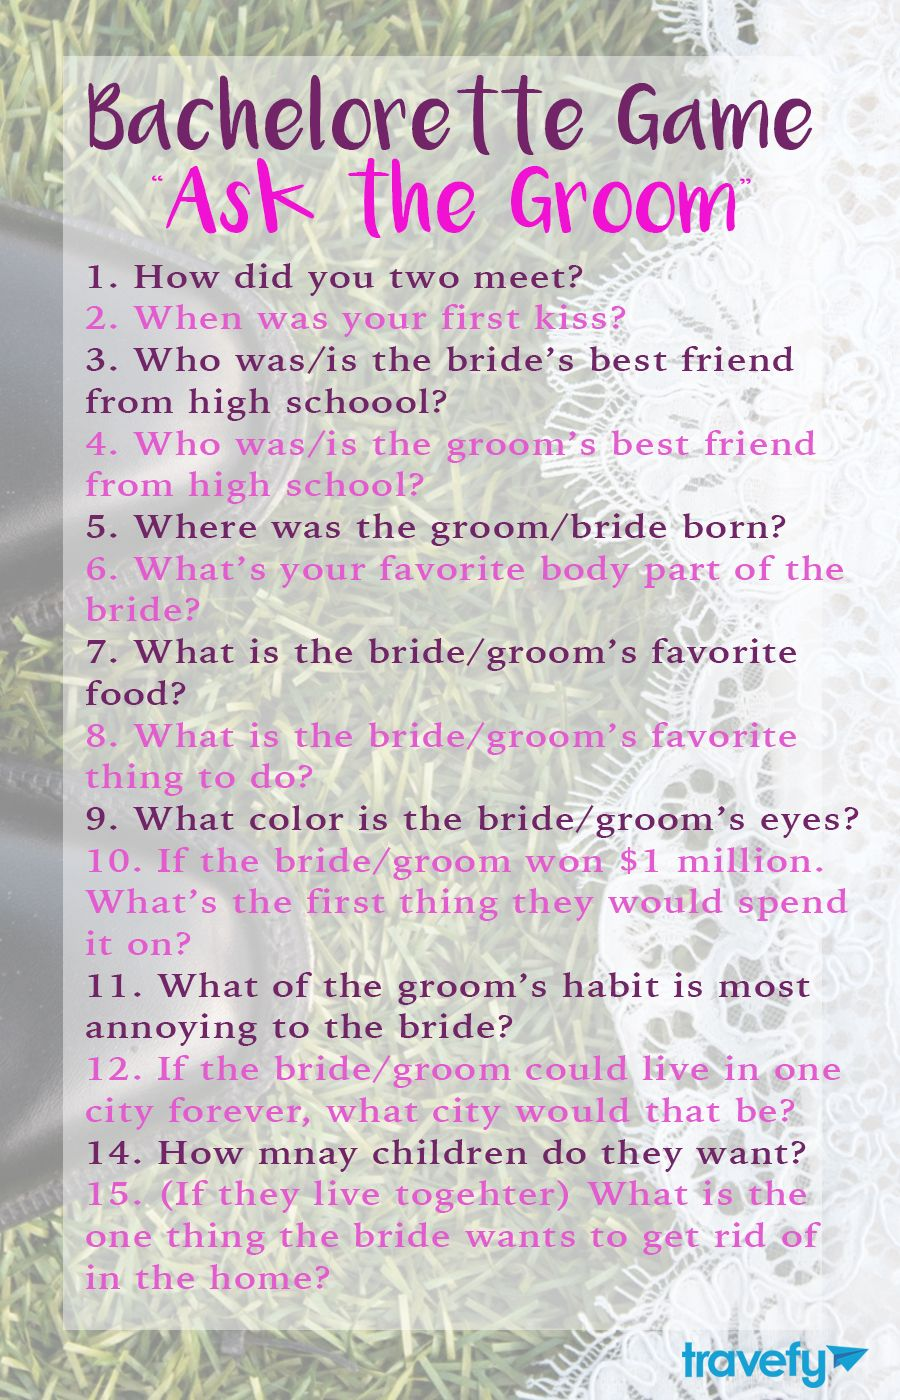 bachelorette game ask the groom questions more